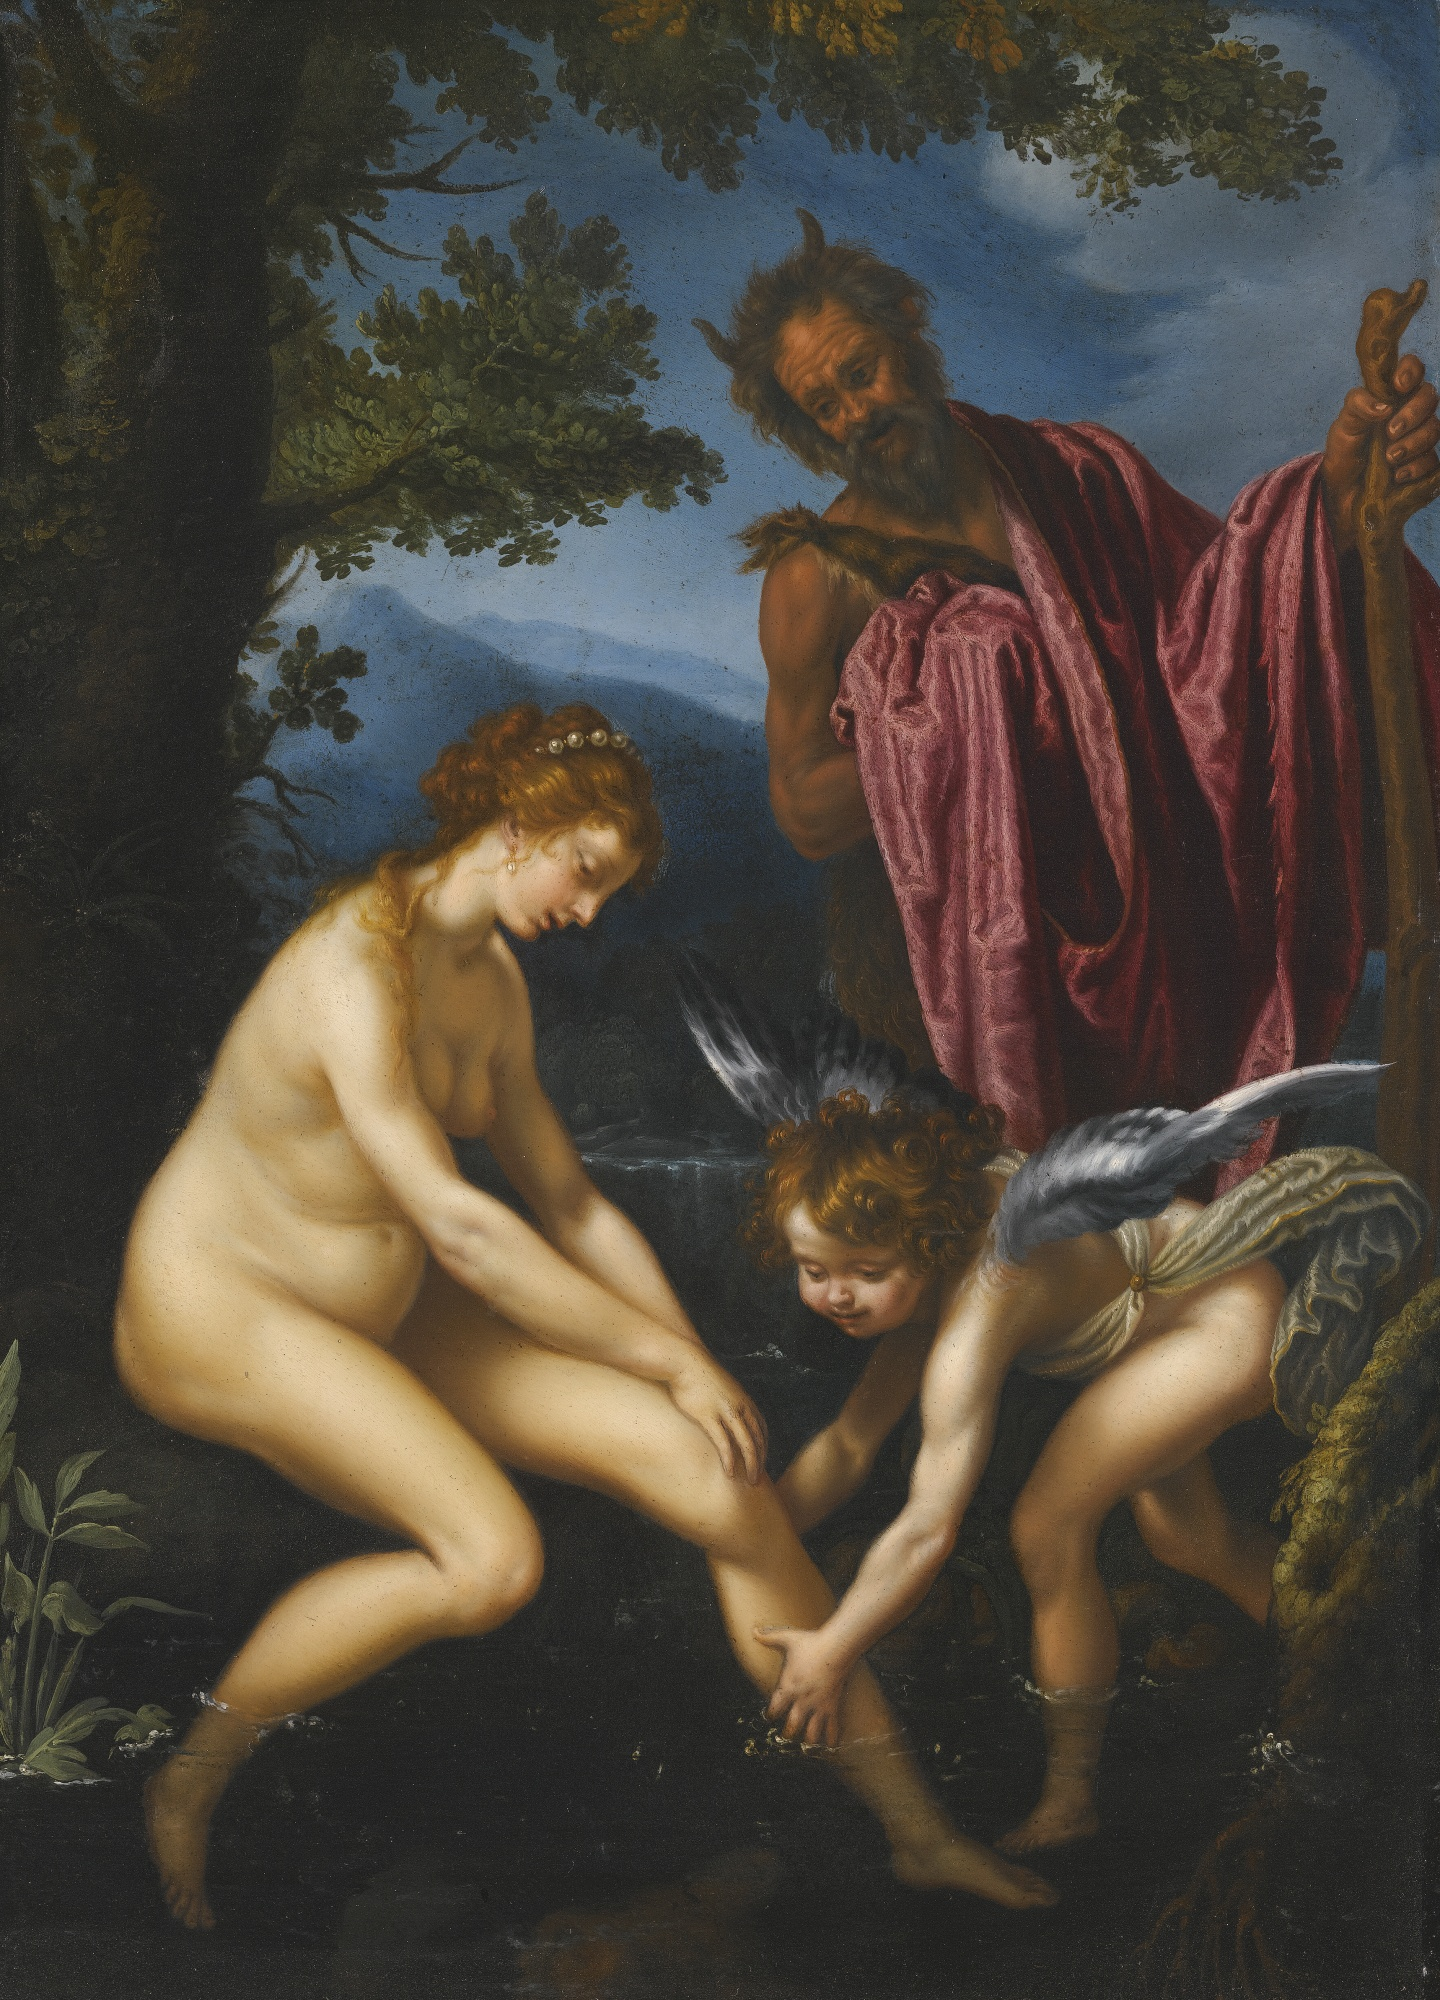 https://upload.wikimedia.org/wikipedia/commons/6/62/Venus%2C_Cupid_and_Pan%2C_oil_on_copper_painting_by_Giovanni_Bilivert.jpg